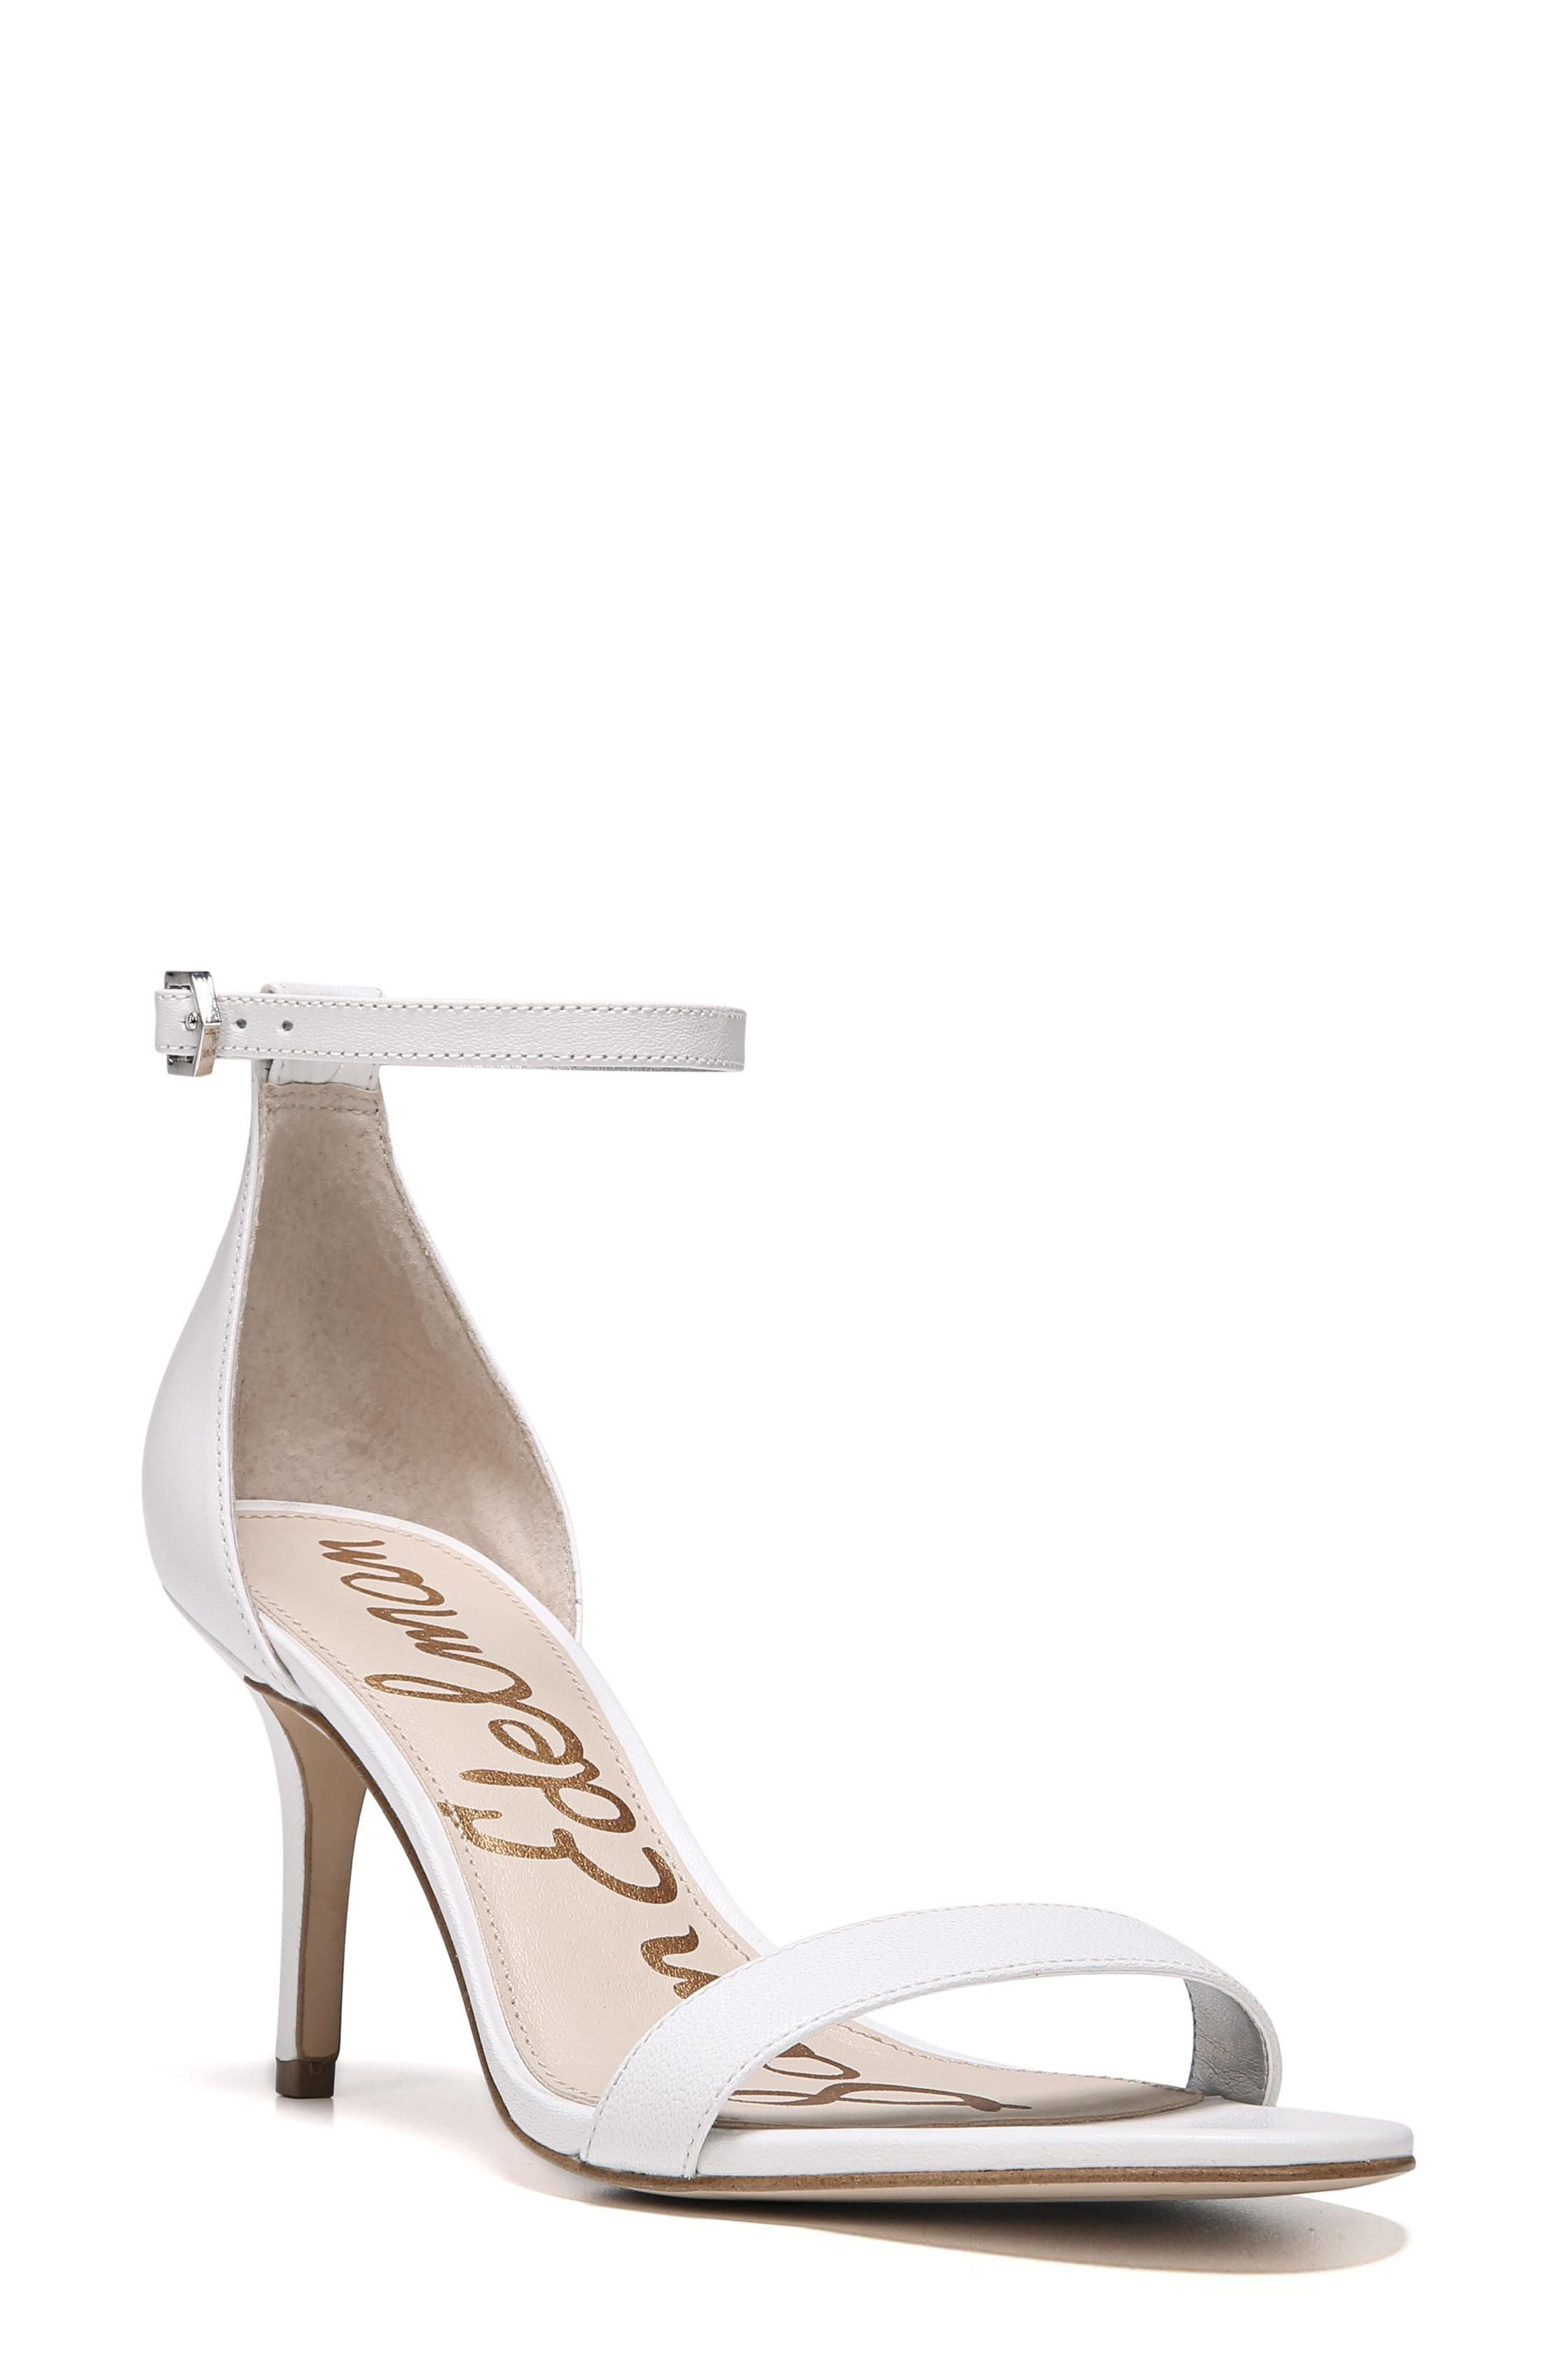 'Patti' Ankle Strap Sandal,                             Main thumbnail 1, color,                             BRIGHT WHITE LEATHER